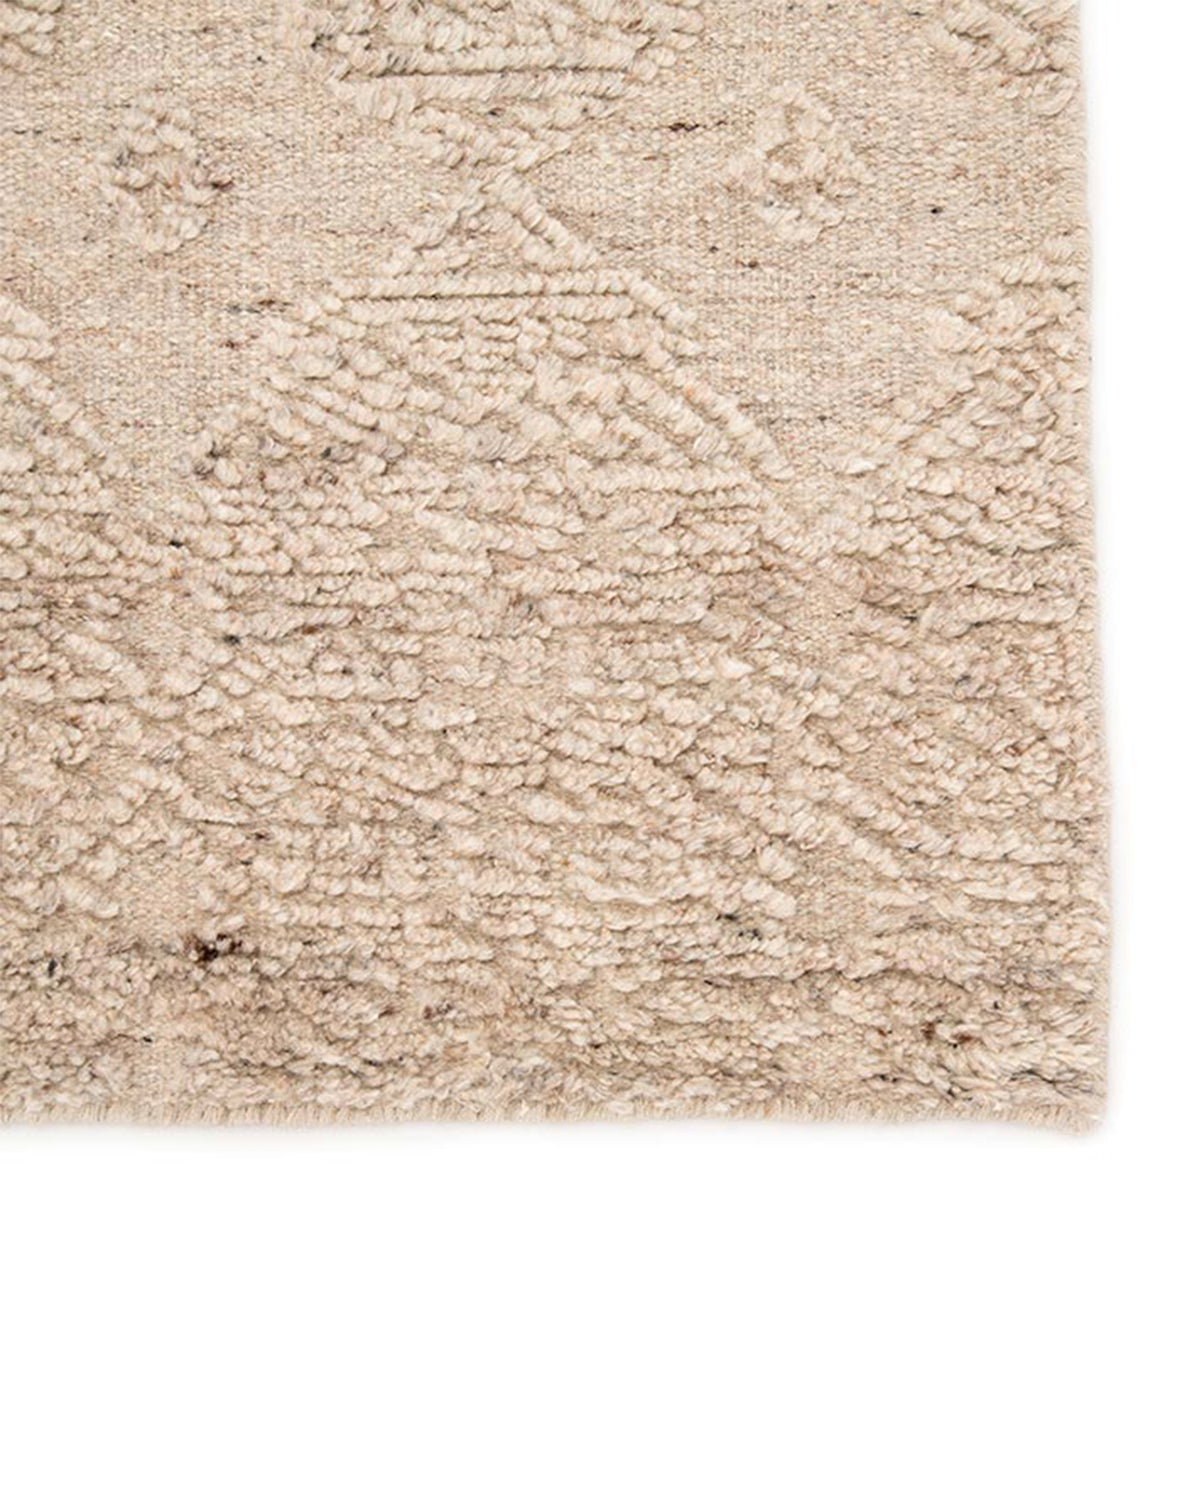 Lille Hand-Knotted Rug